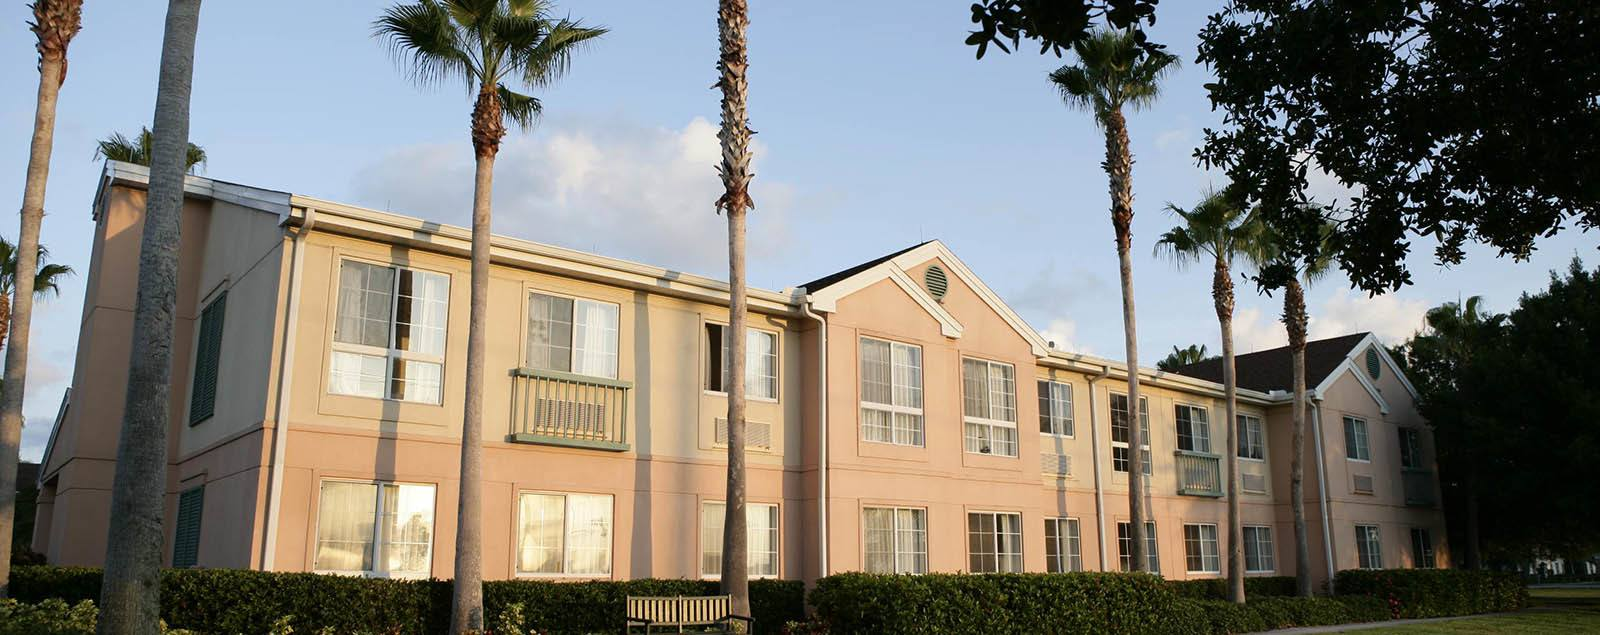 Request a Venice senior living facility brochure